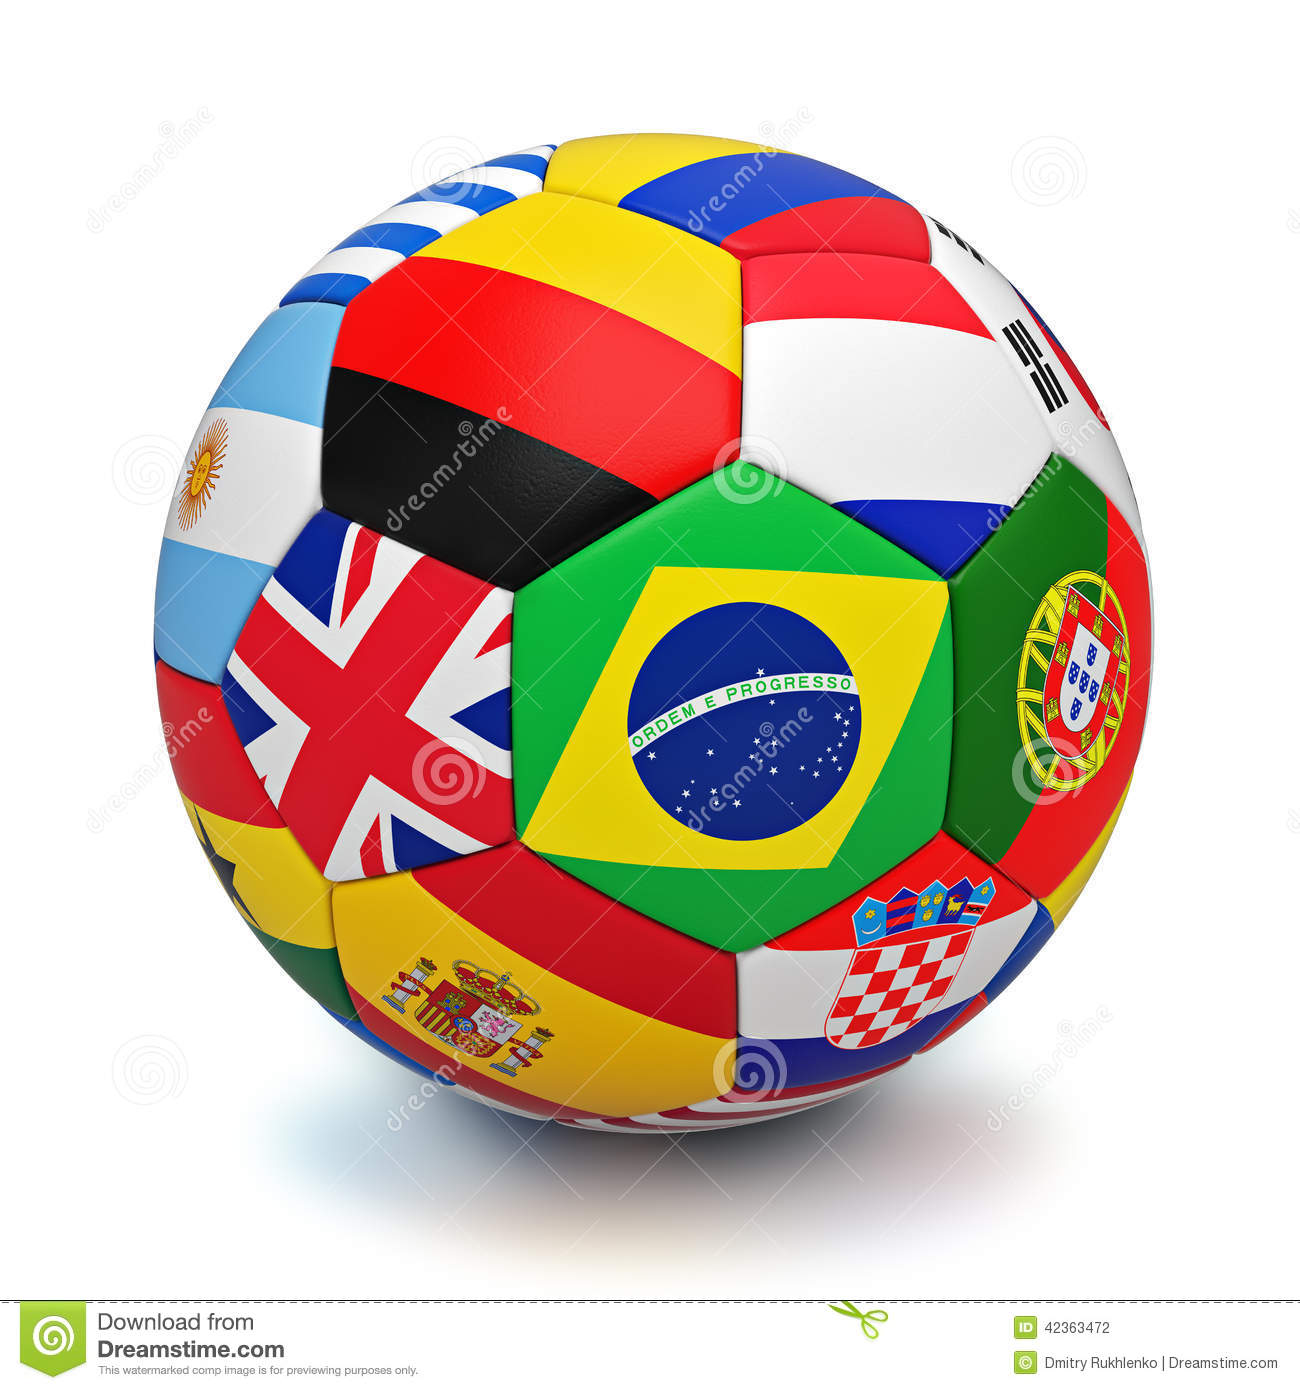 ballon de football avec des drapeaux de pays du monde illustration stock image 42363472. Black Bedroom Furniture Sets. Home Design Ideas